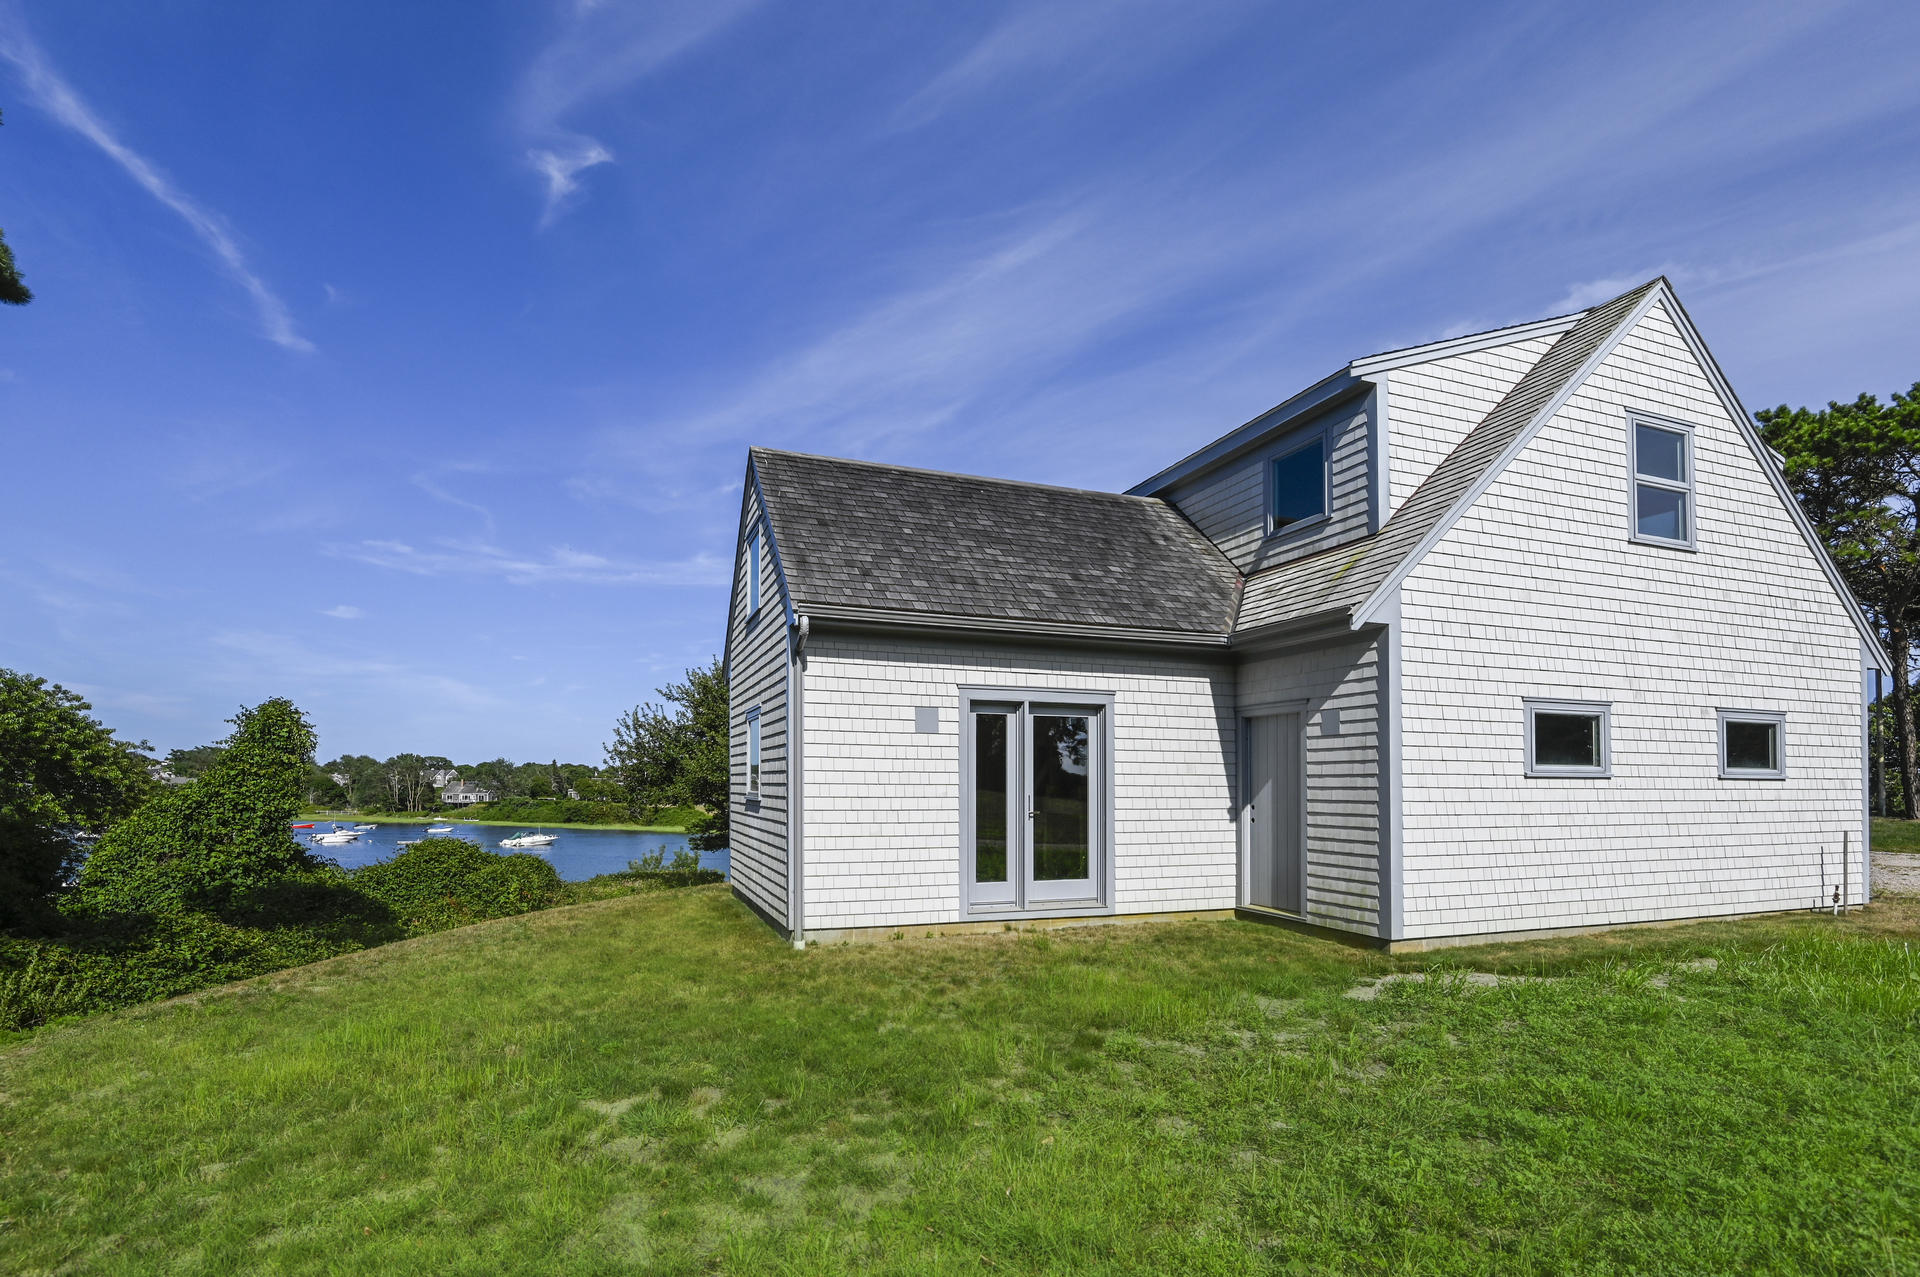 75 Grist Mill Lane Chatham, MA 02633